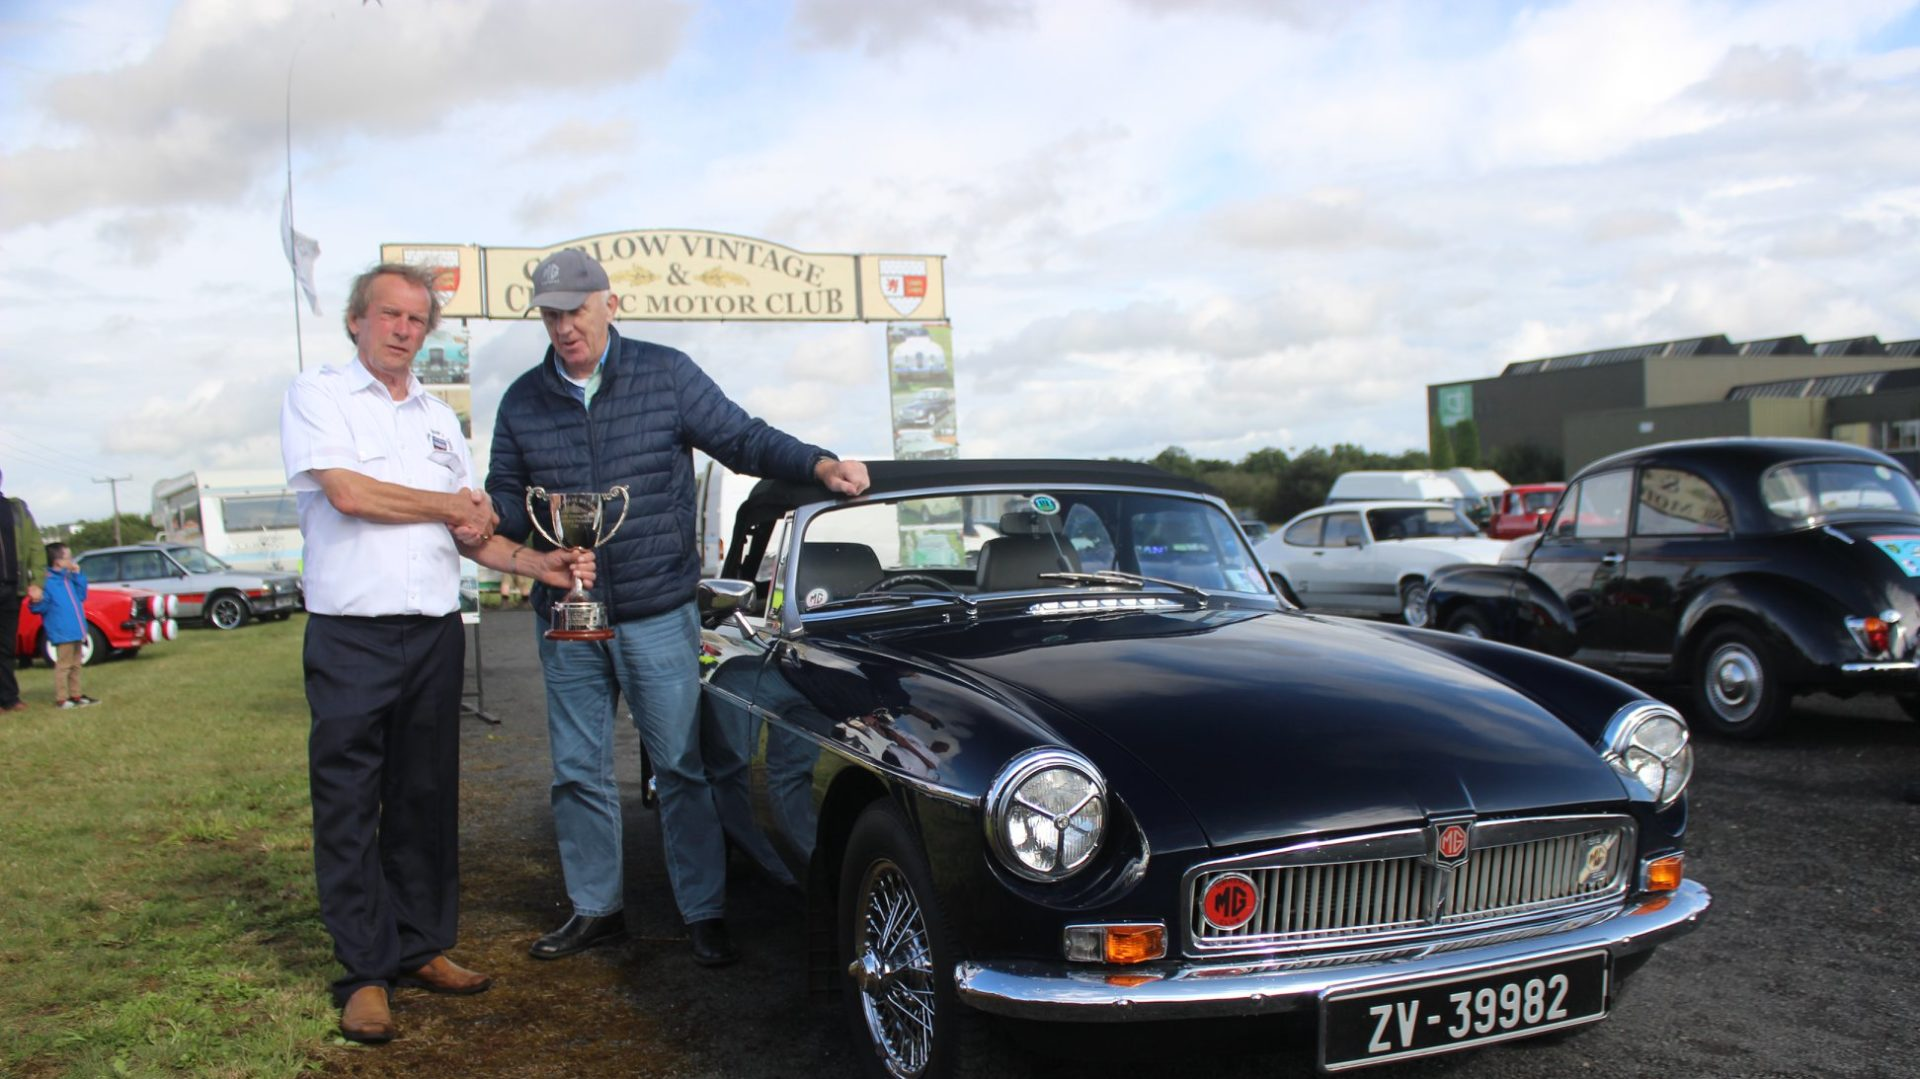 CARLOW VINTAGE AND CLASSIC MOTOR CLUB